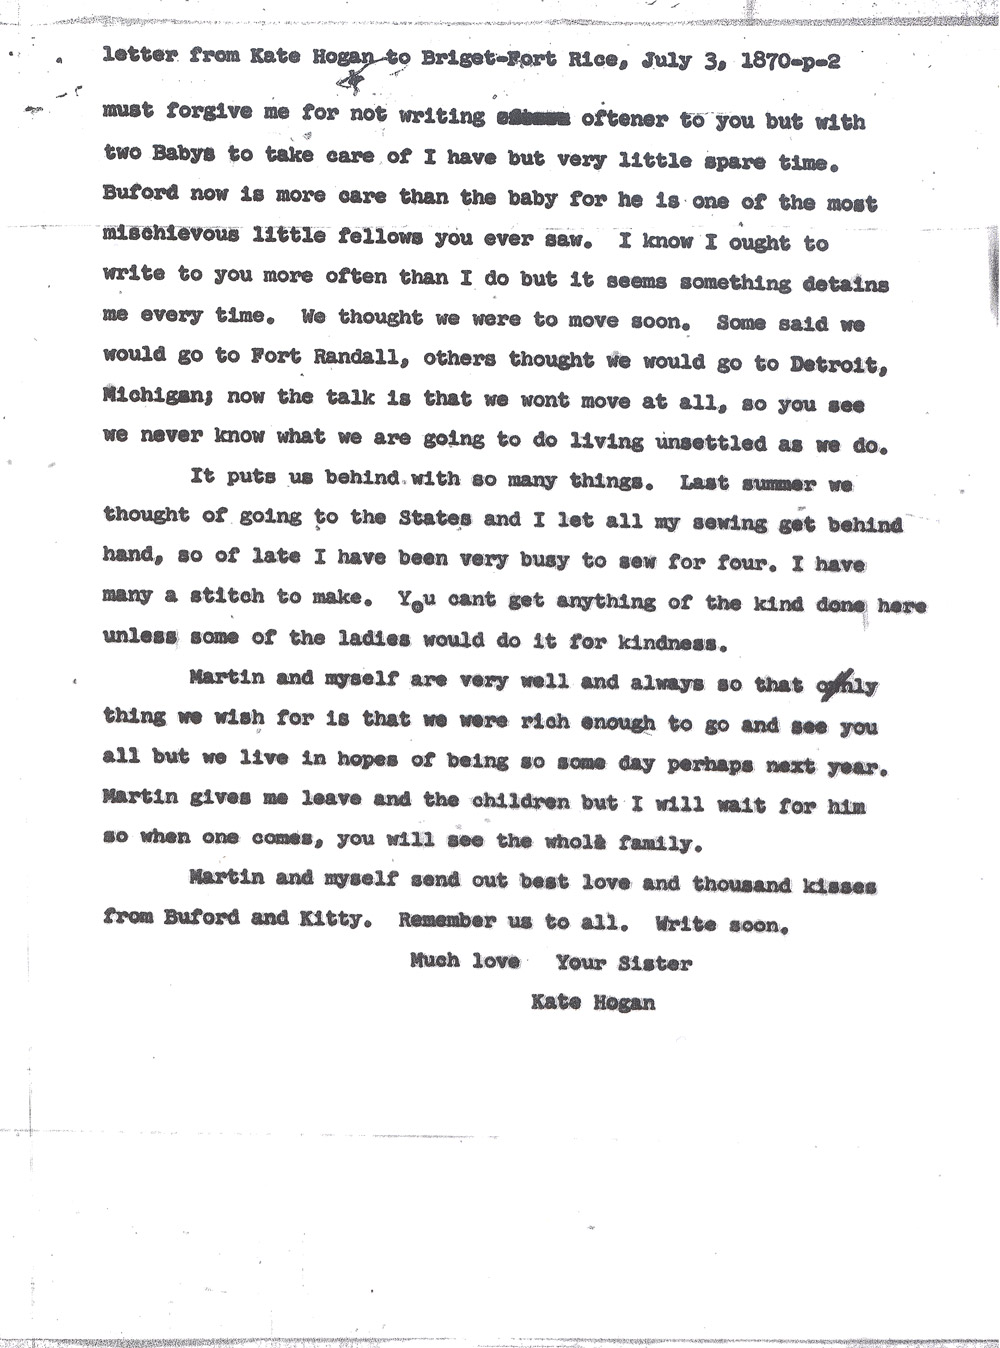 Kate Hogan Letter 2, Transcription, Page 2